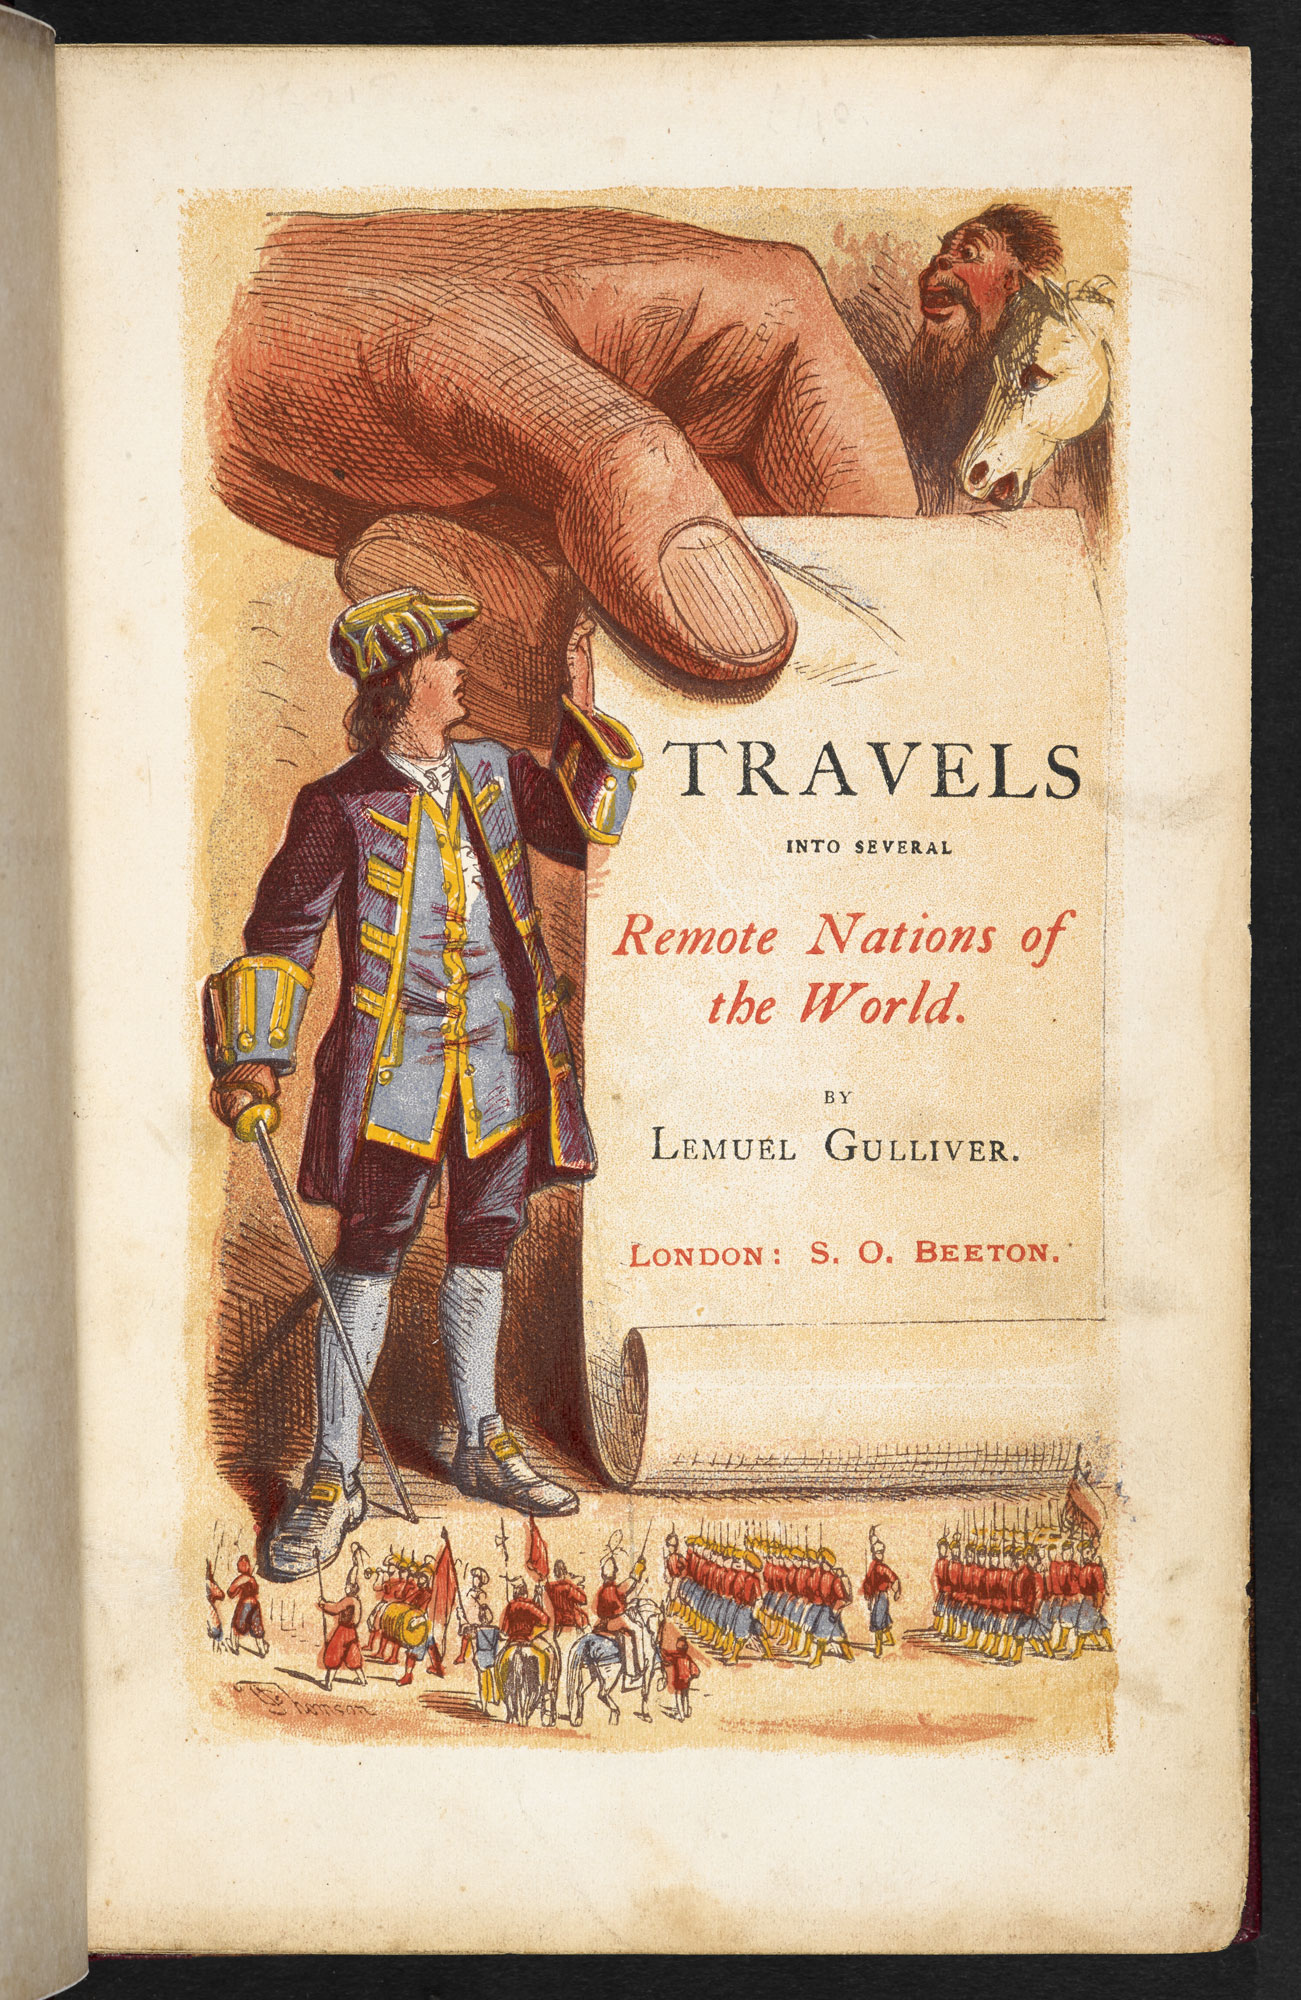 1864 illustrated edition of Gulliver's Travels [page: frontispiece]